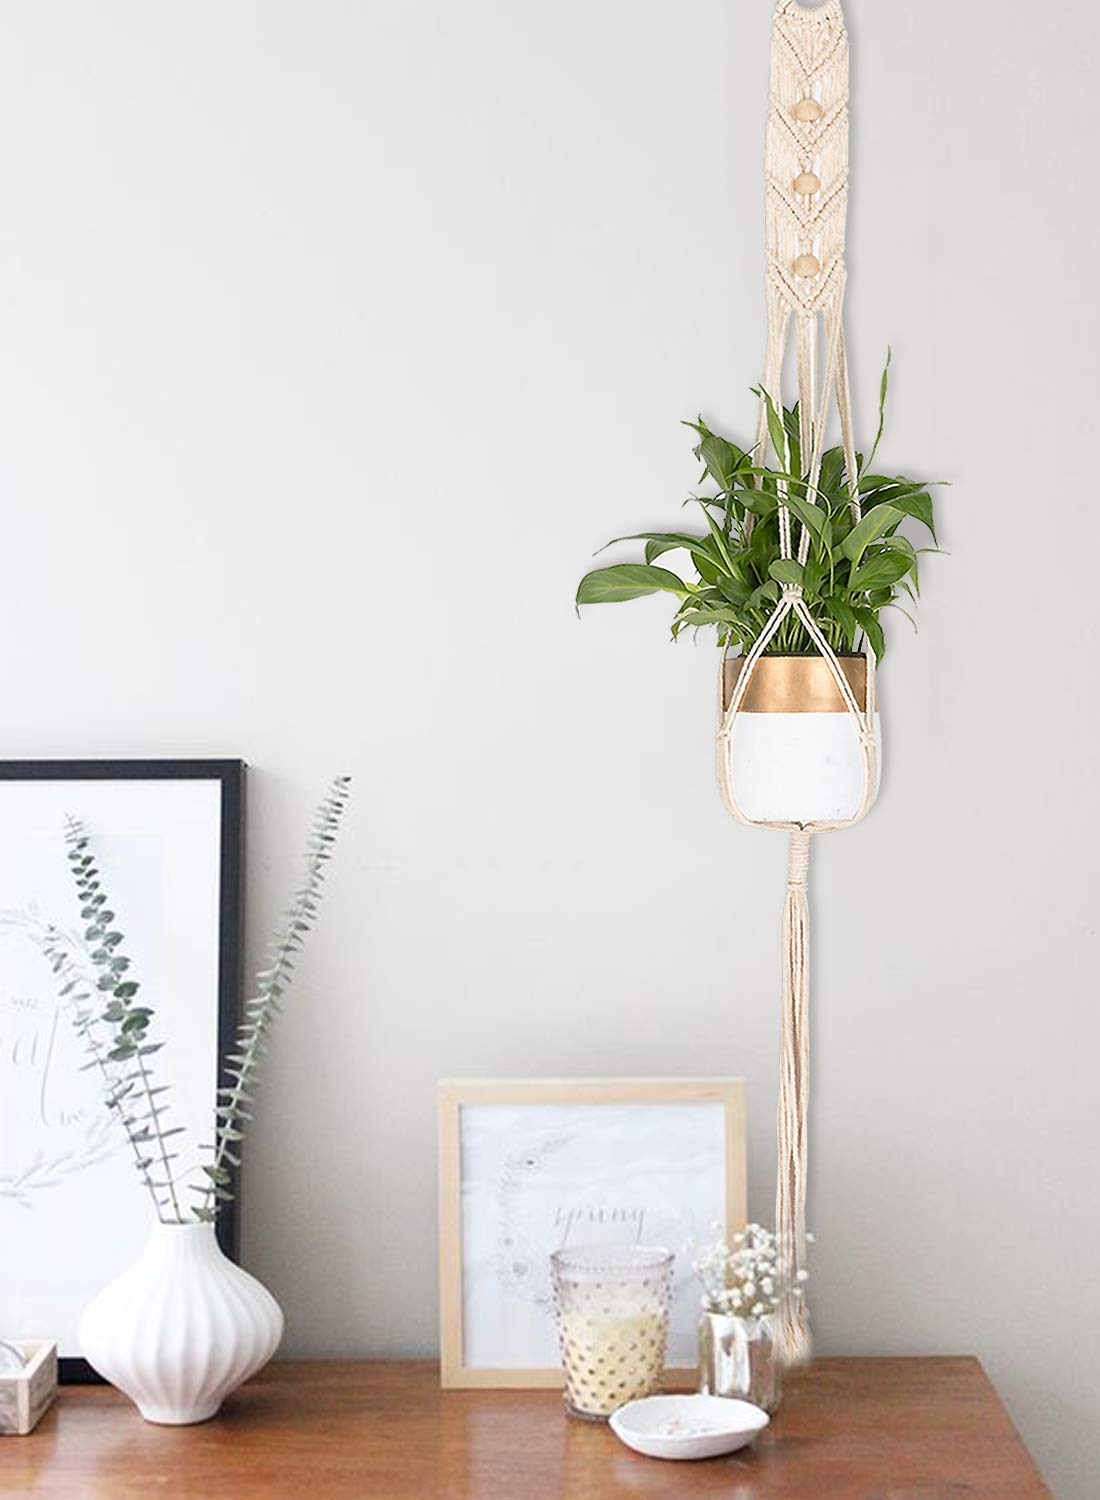 Add wall accents and 8 Other Ways To Update Your Home On A Budget. I was looking for unique and fun ways to spruce up my home, either with accents, plants, or wallpaper. these are some budget-friendly ways to make a room come to life. #homedecor #home #homeinspo